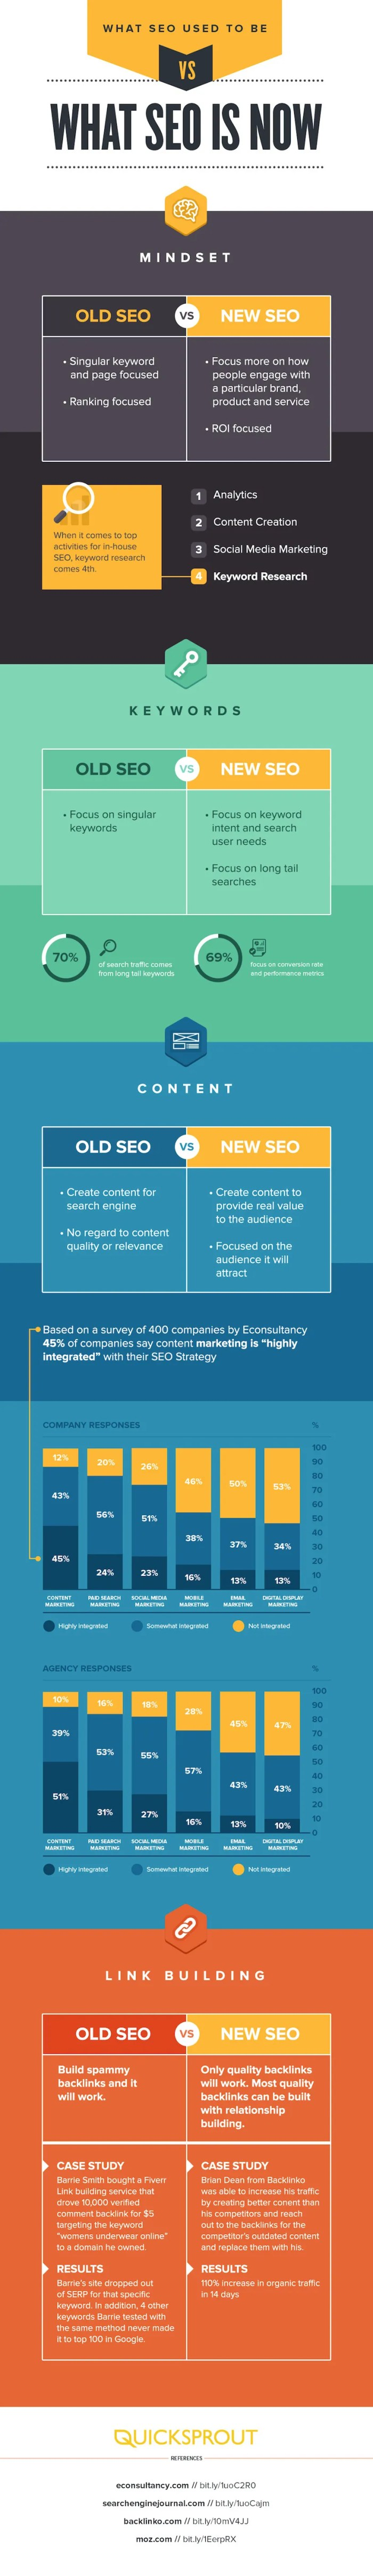 What SEO Used To Be